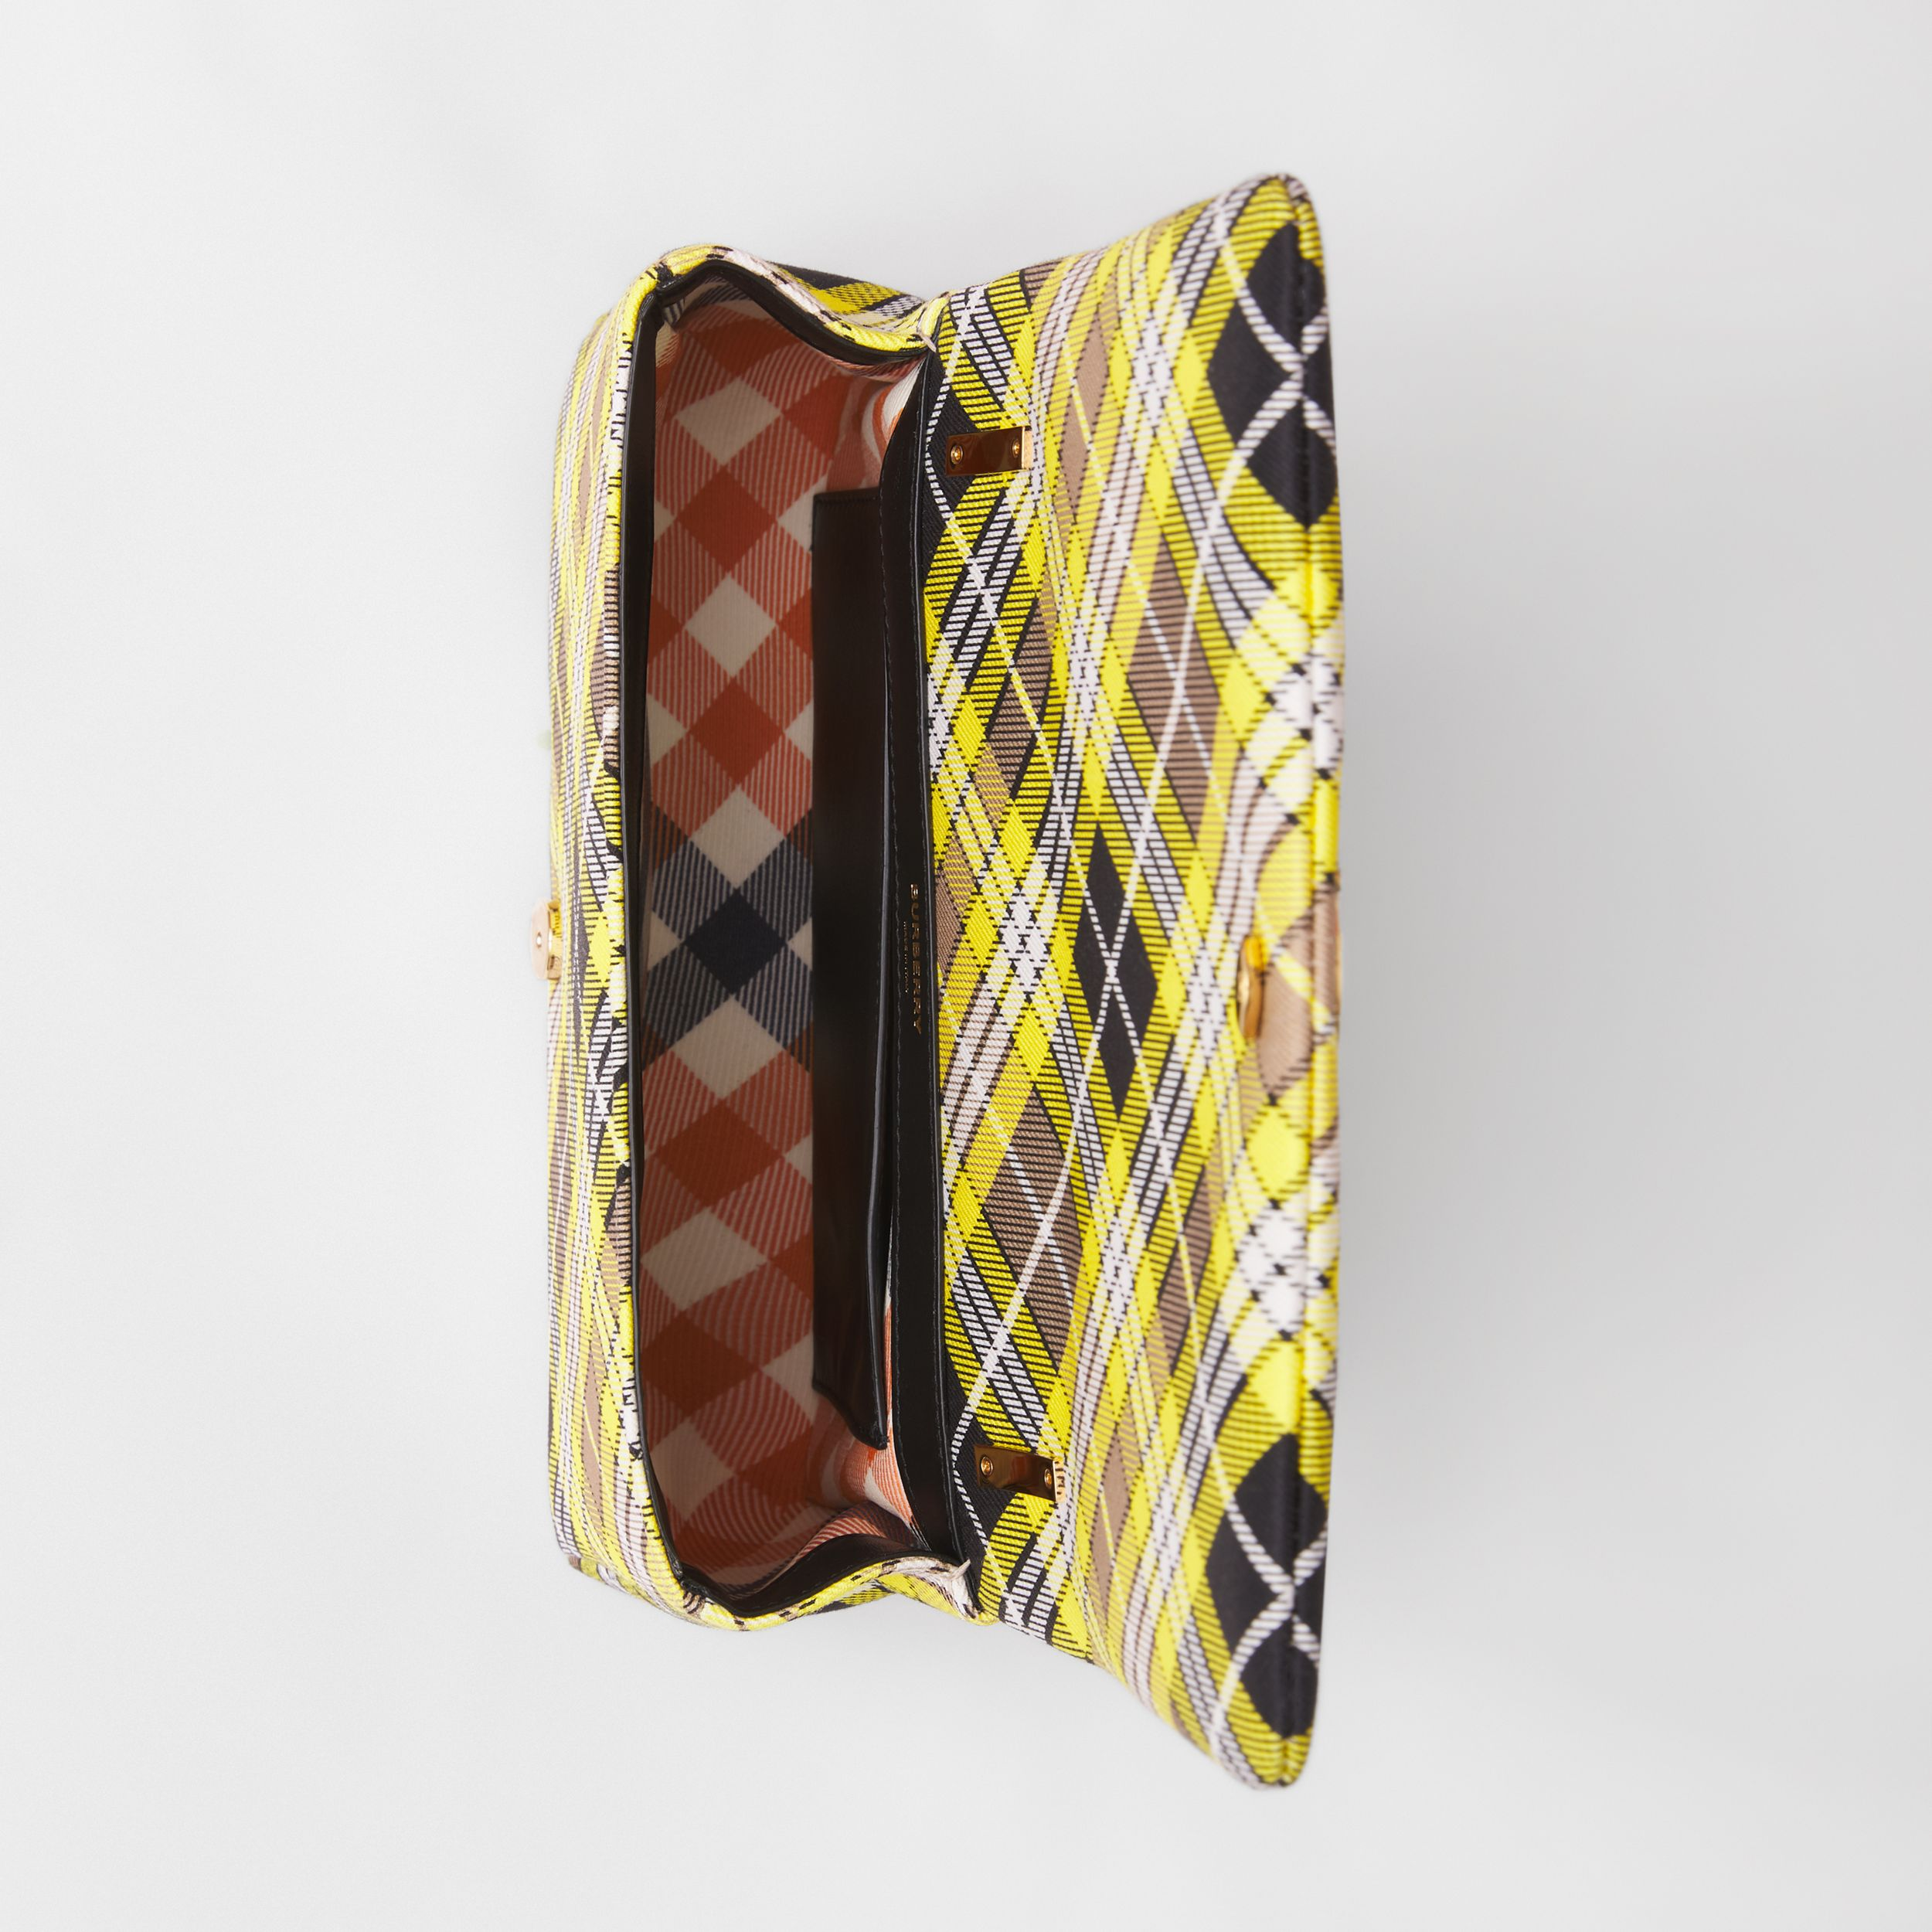 Small Tartan Cotton Lola Bag in Marigold Yellow - Women | Burberry - 4